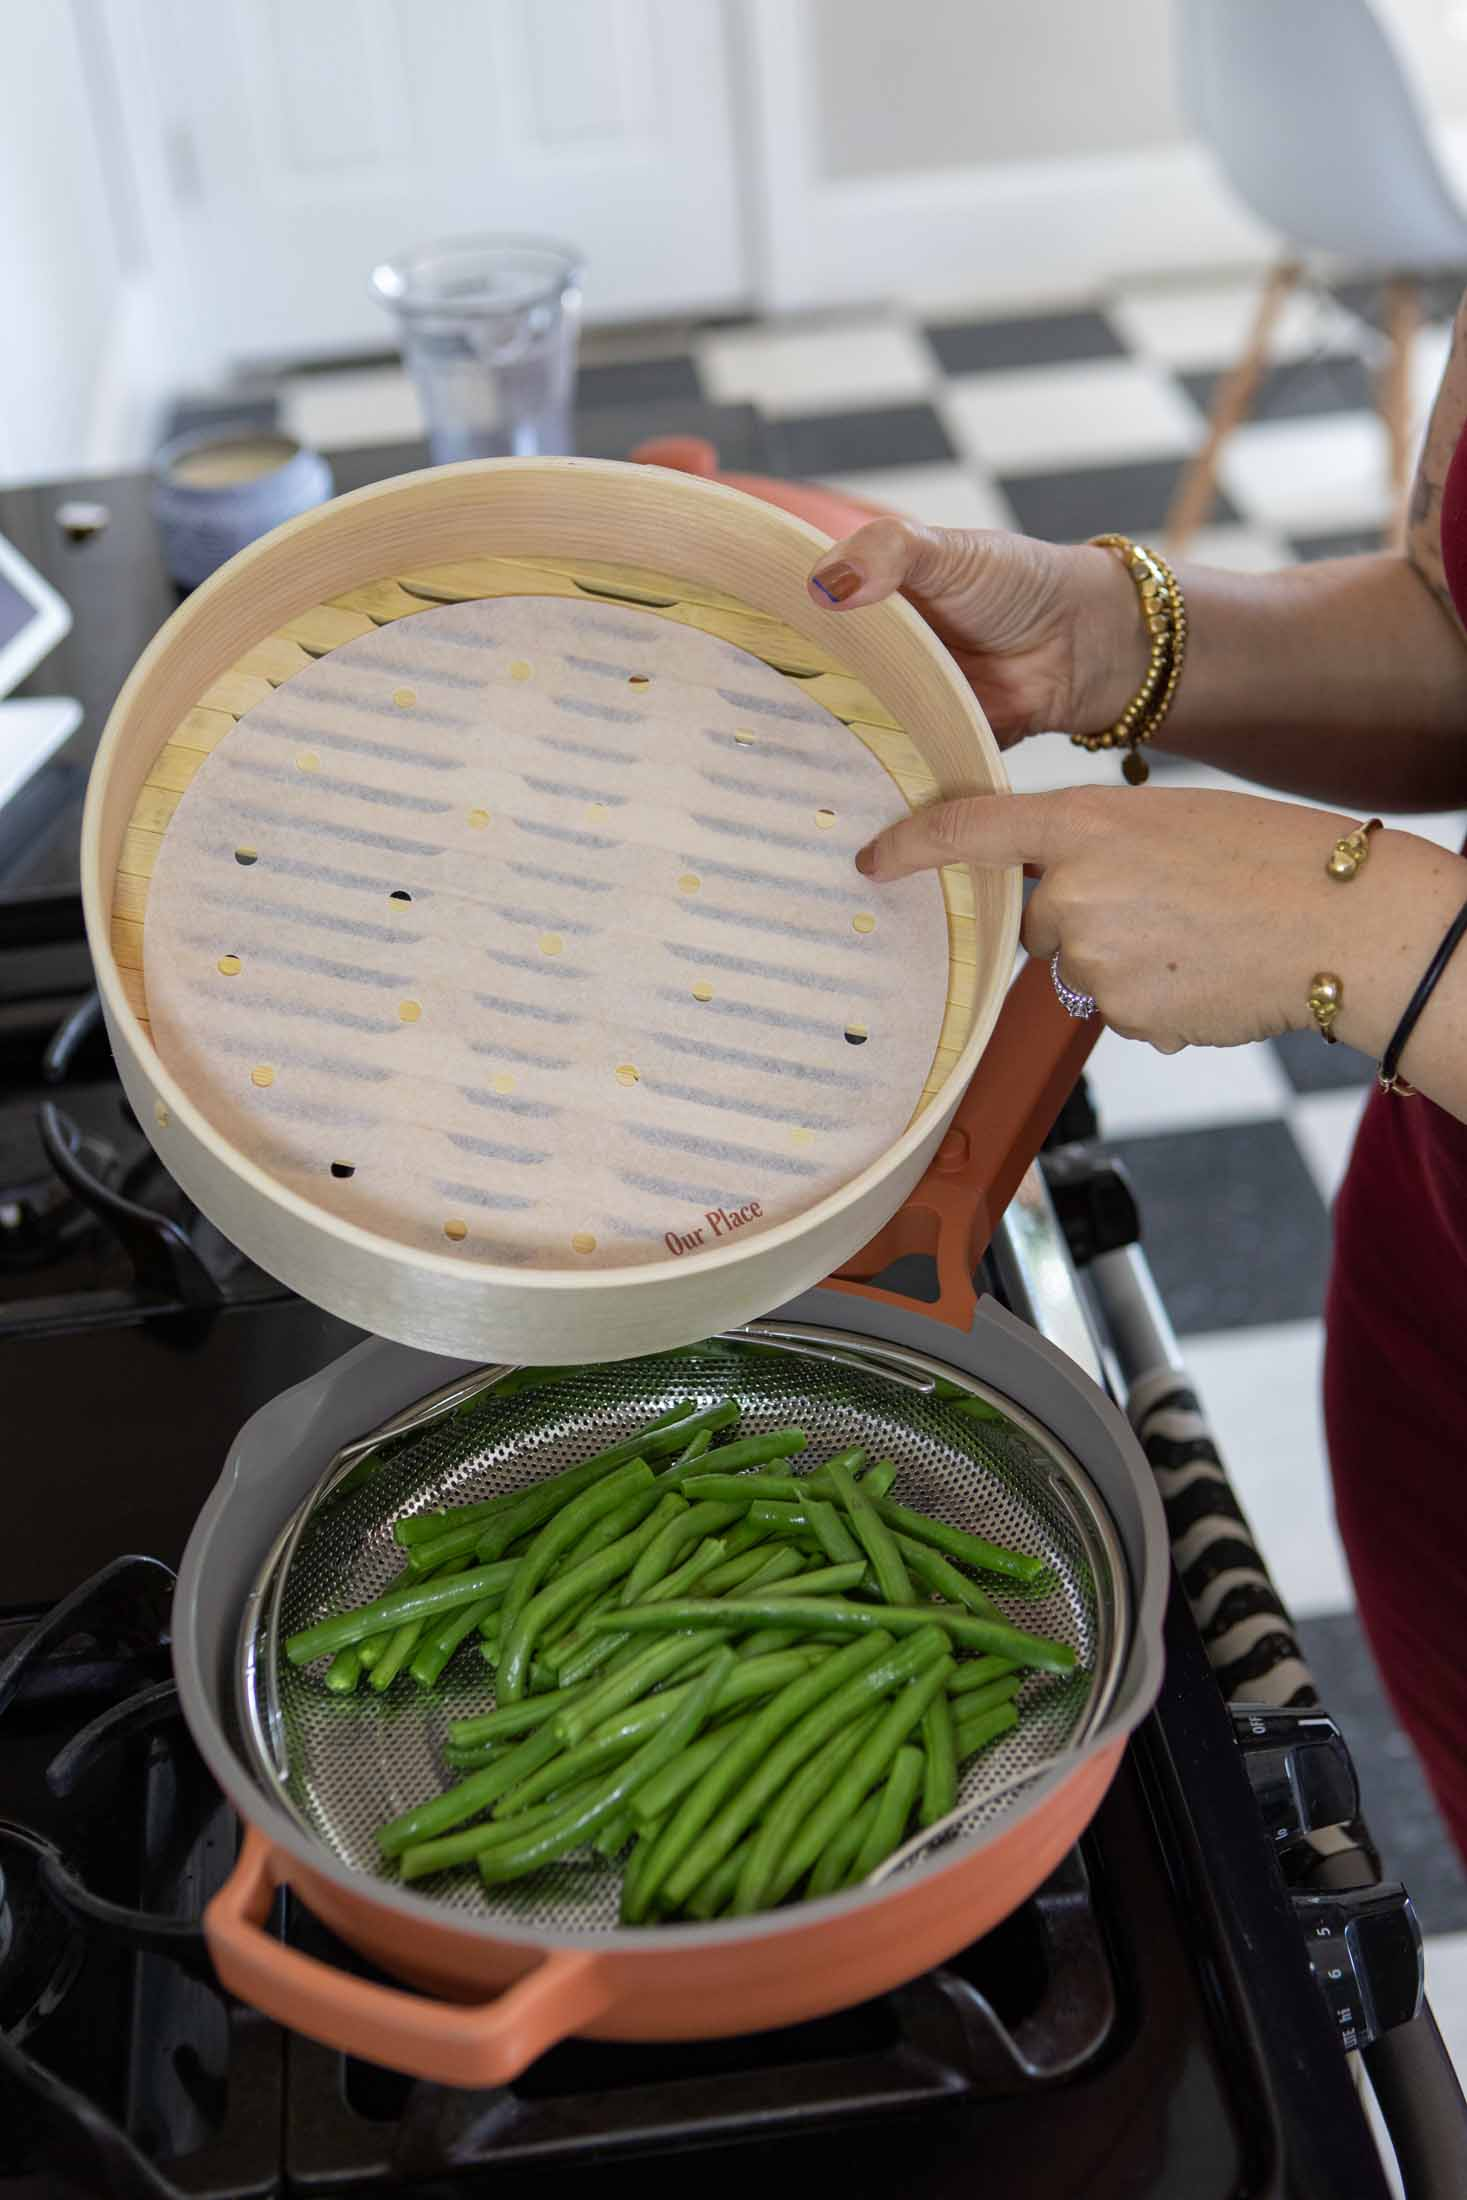 This easy dinner is not only quick to cook, but is made even easier by the most-used pan in my kitchen: my Our Place Always Pan.